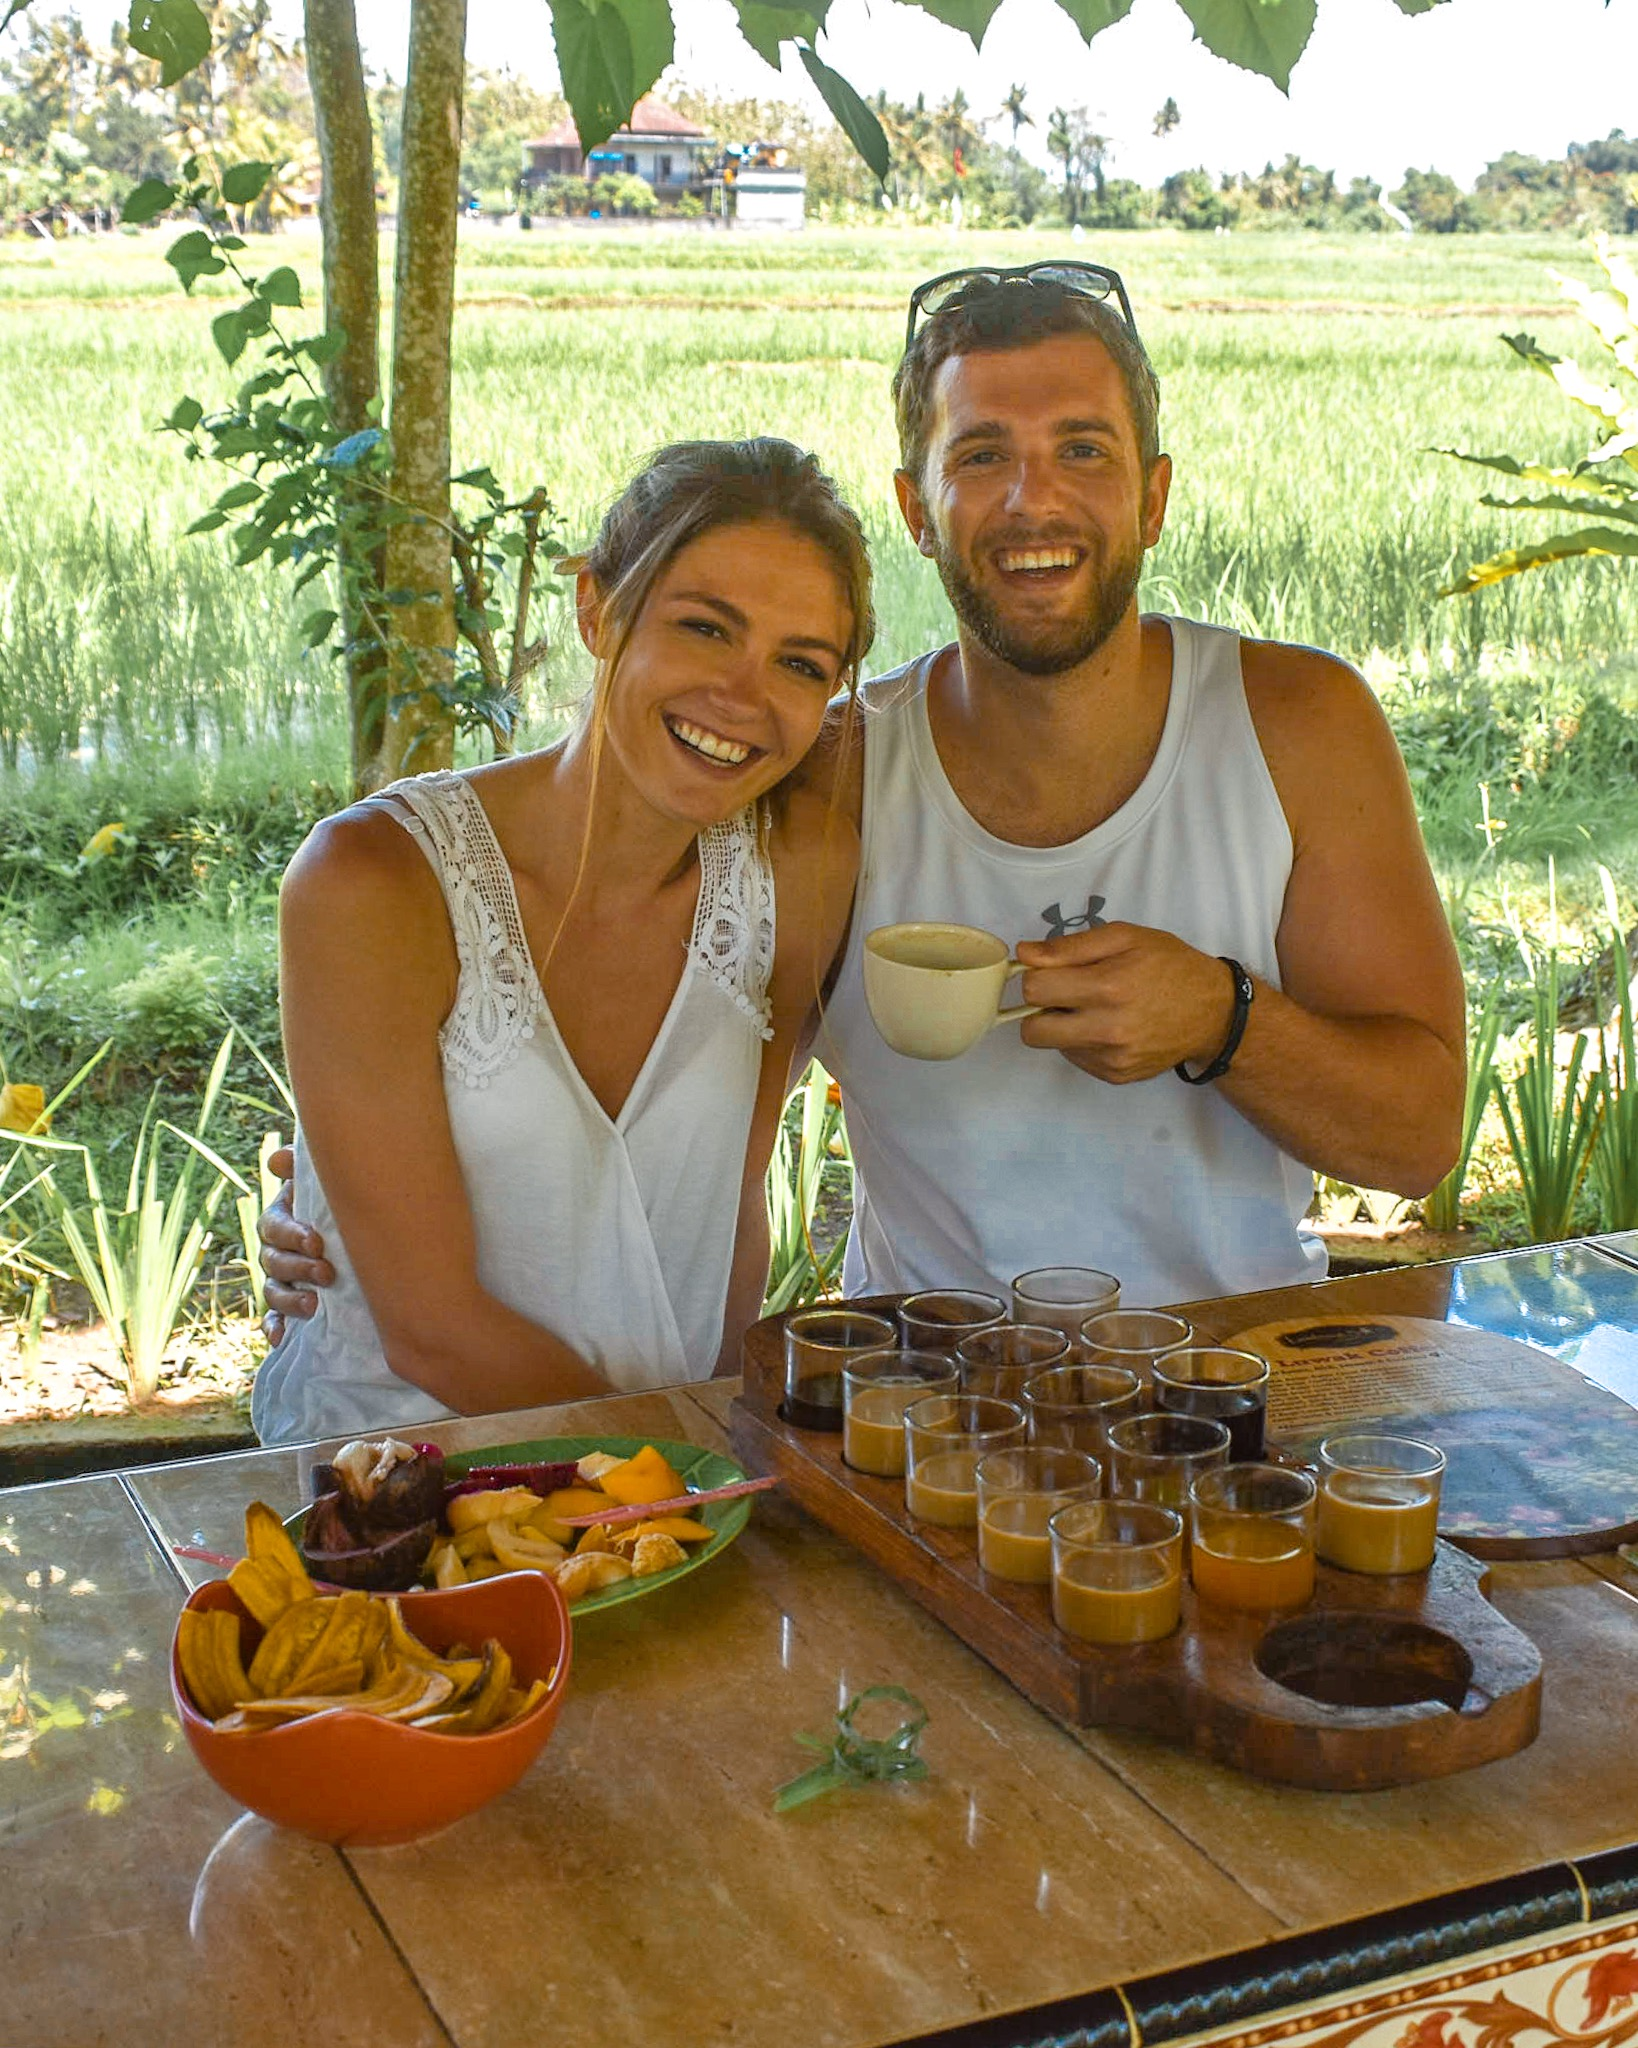 Honeymooners at a Coffee Plantation in Bali, Indonesia